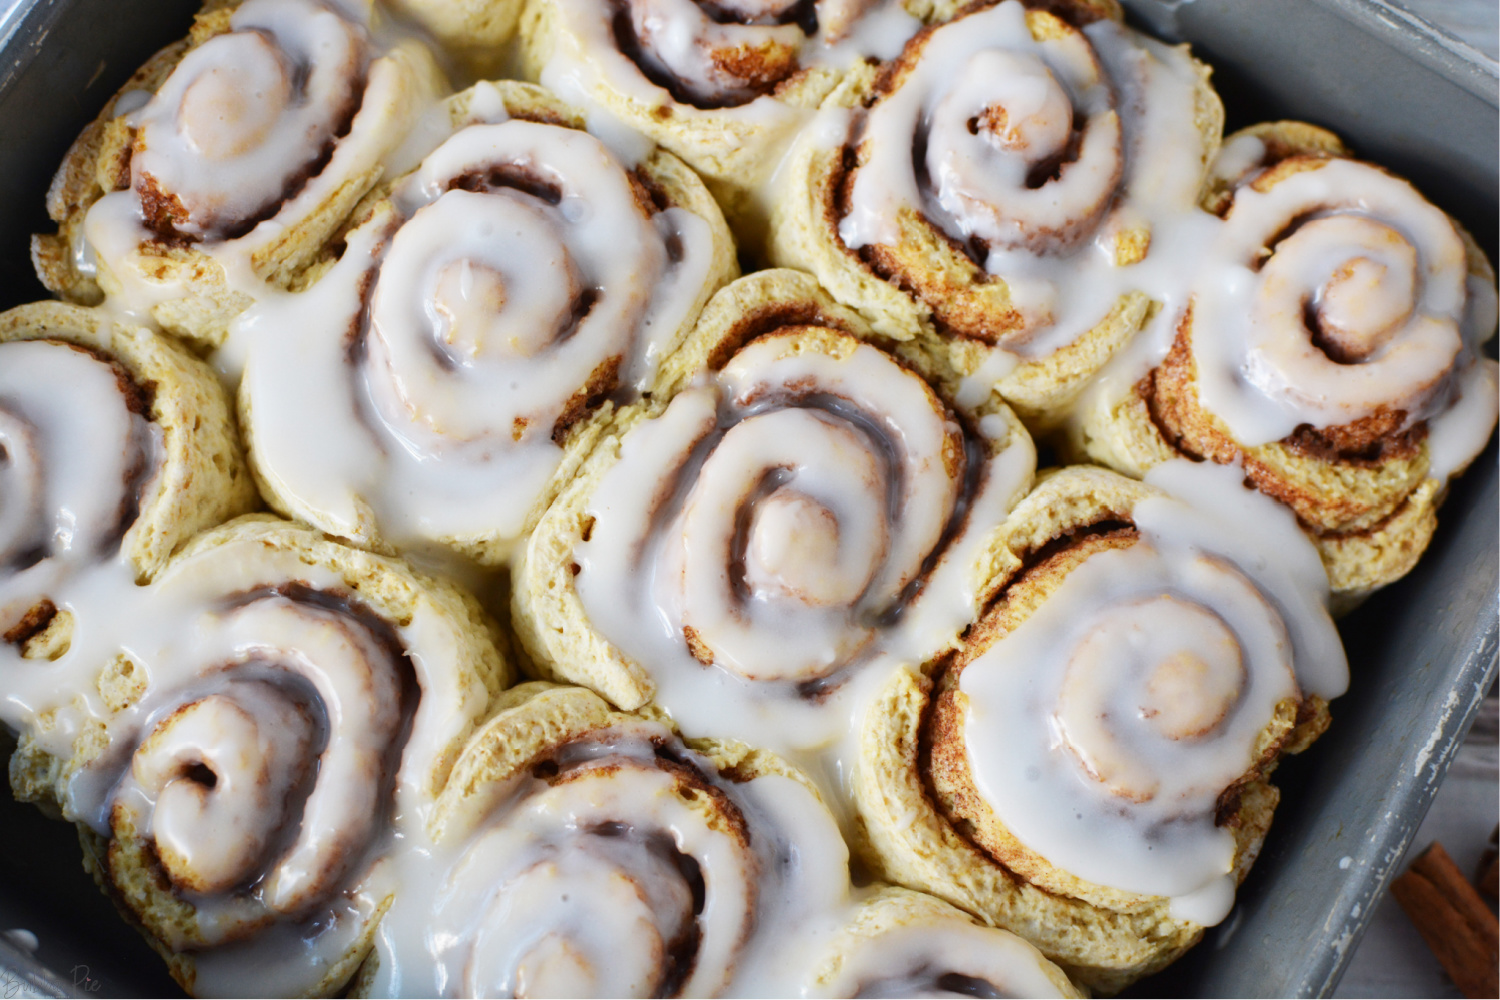 Making Cinnamon Rolls with Bisquick is a quick way for a breakfast or brunch treat.